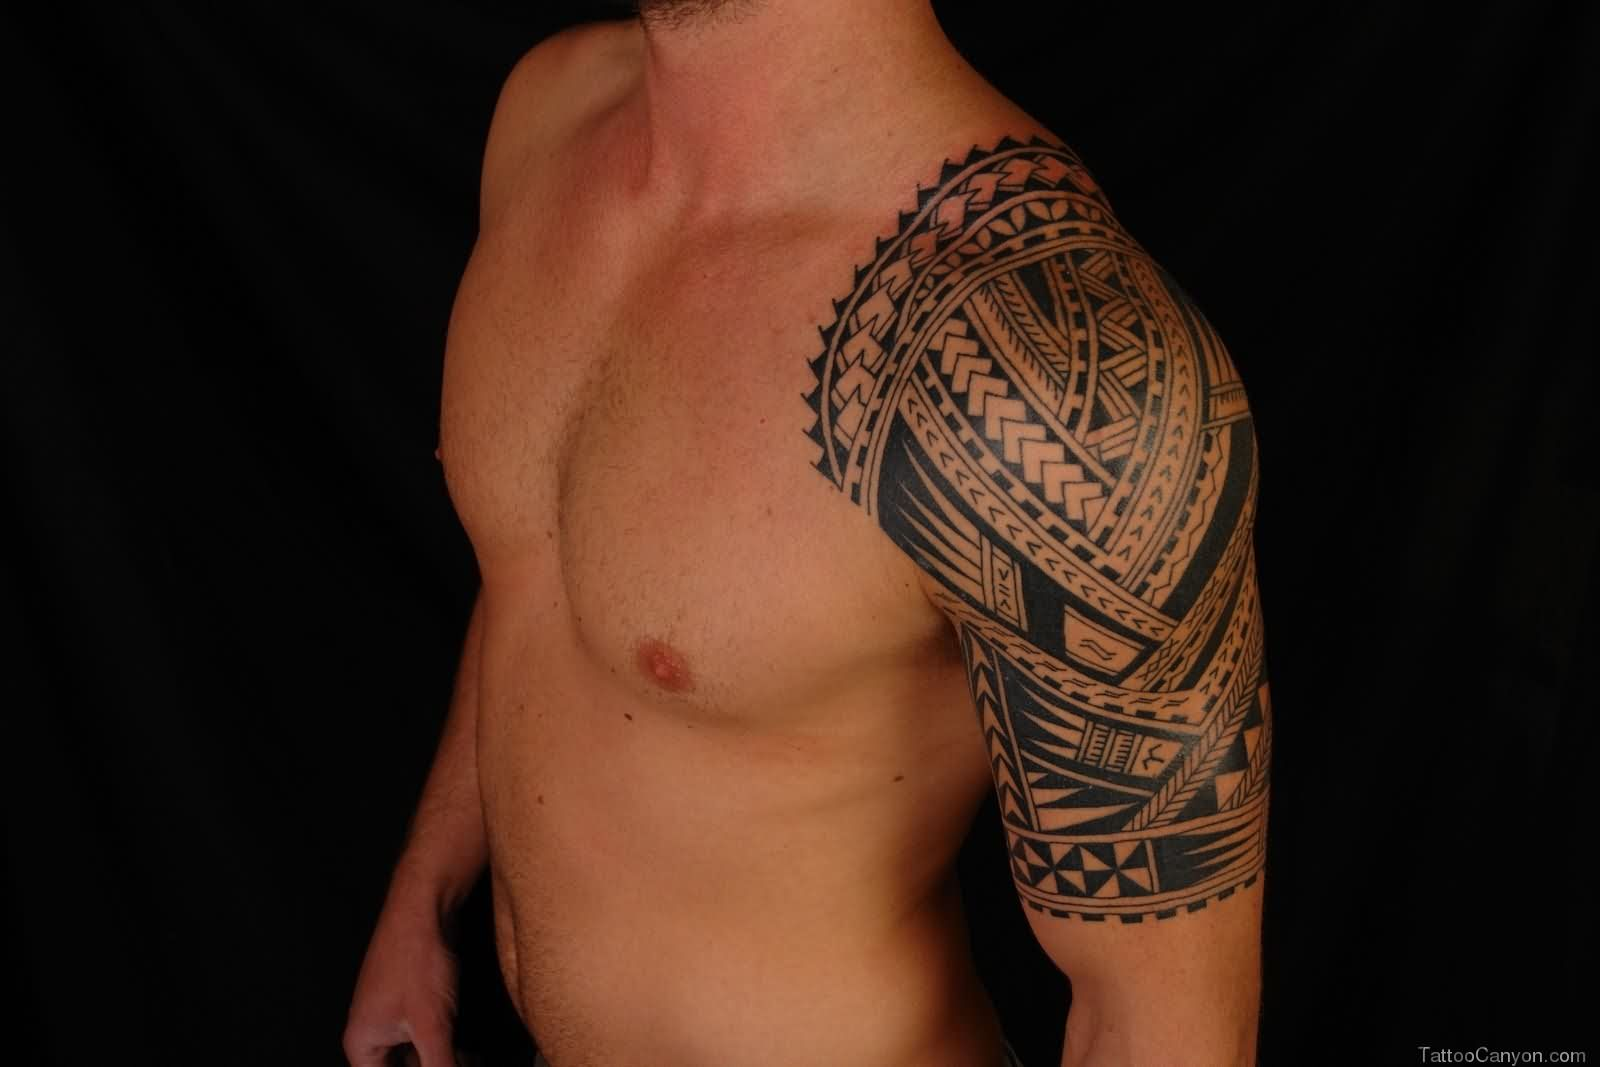 Half Sleeve Of Maori Tribal Tattoo